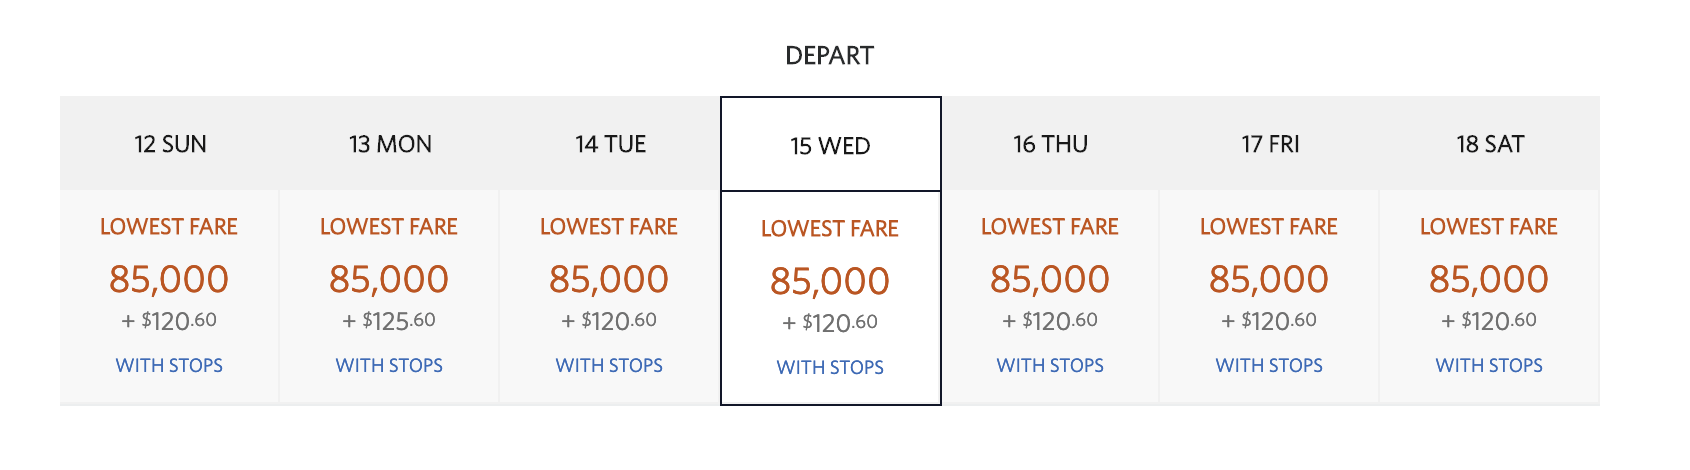 How to Travel to Japan With Points and Miles - The Points Guy